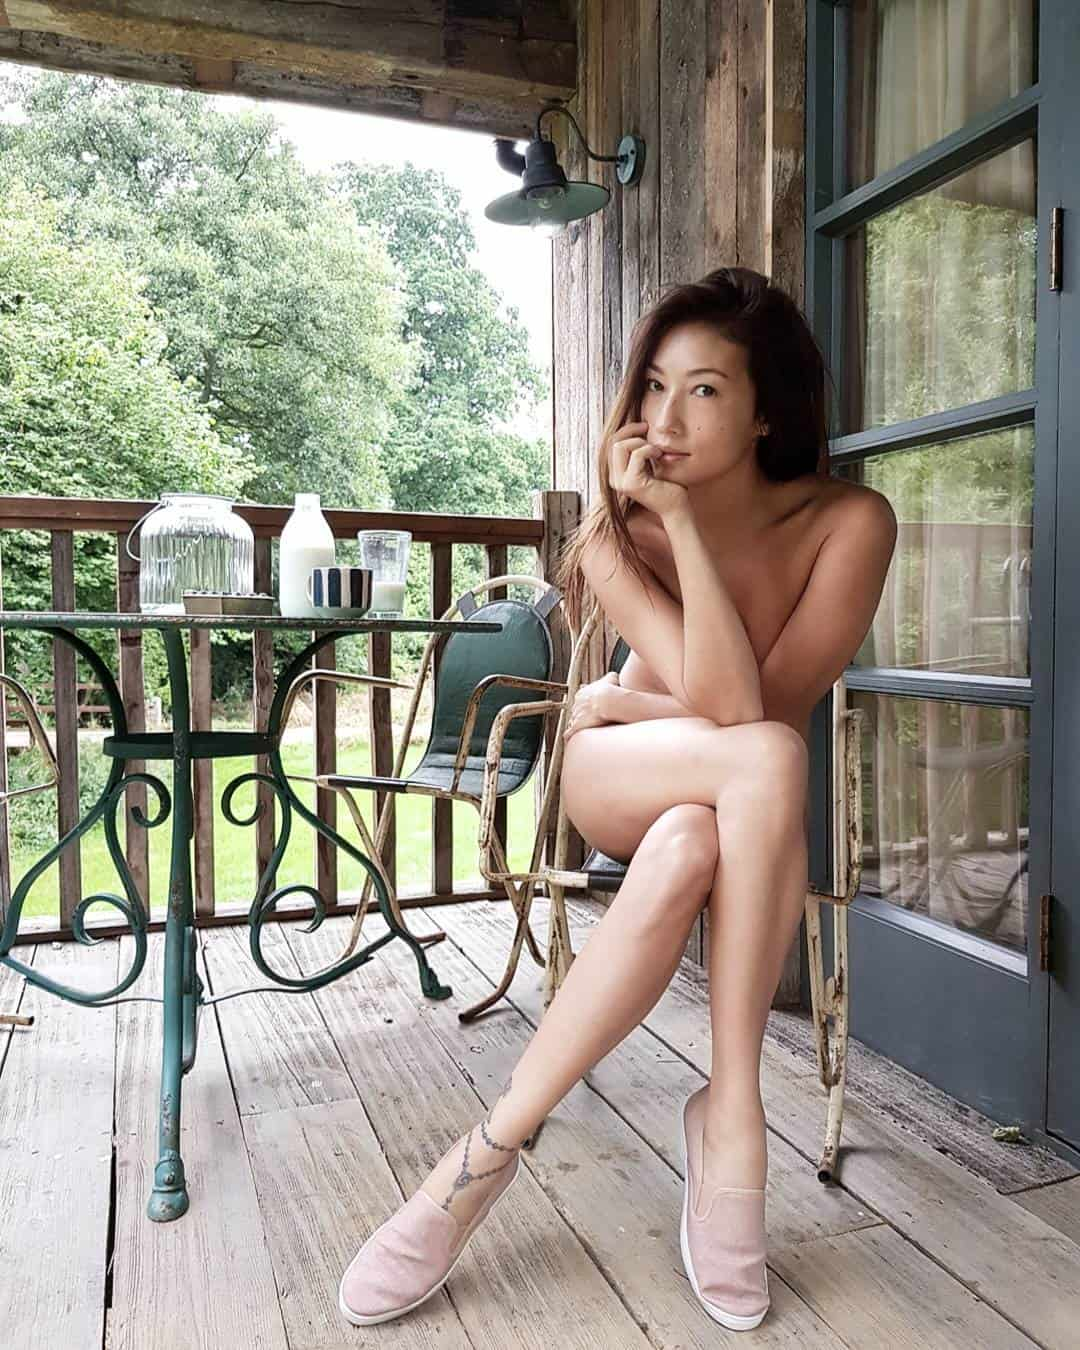 Solenn Heussaff naked in the woods